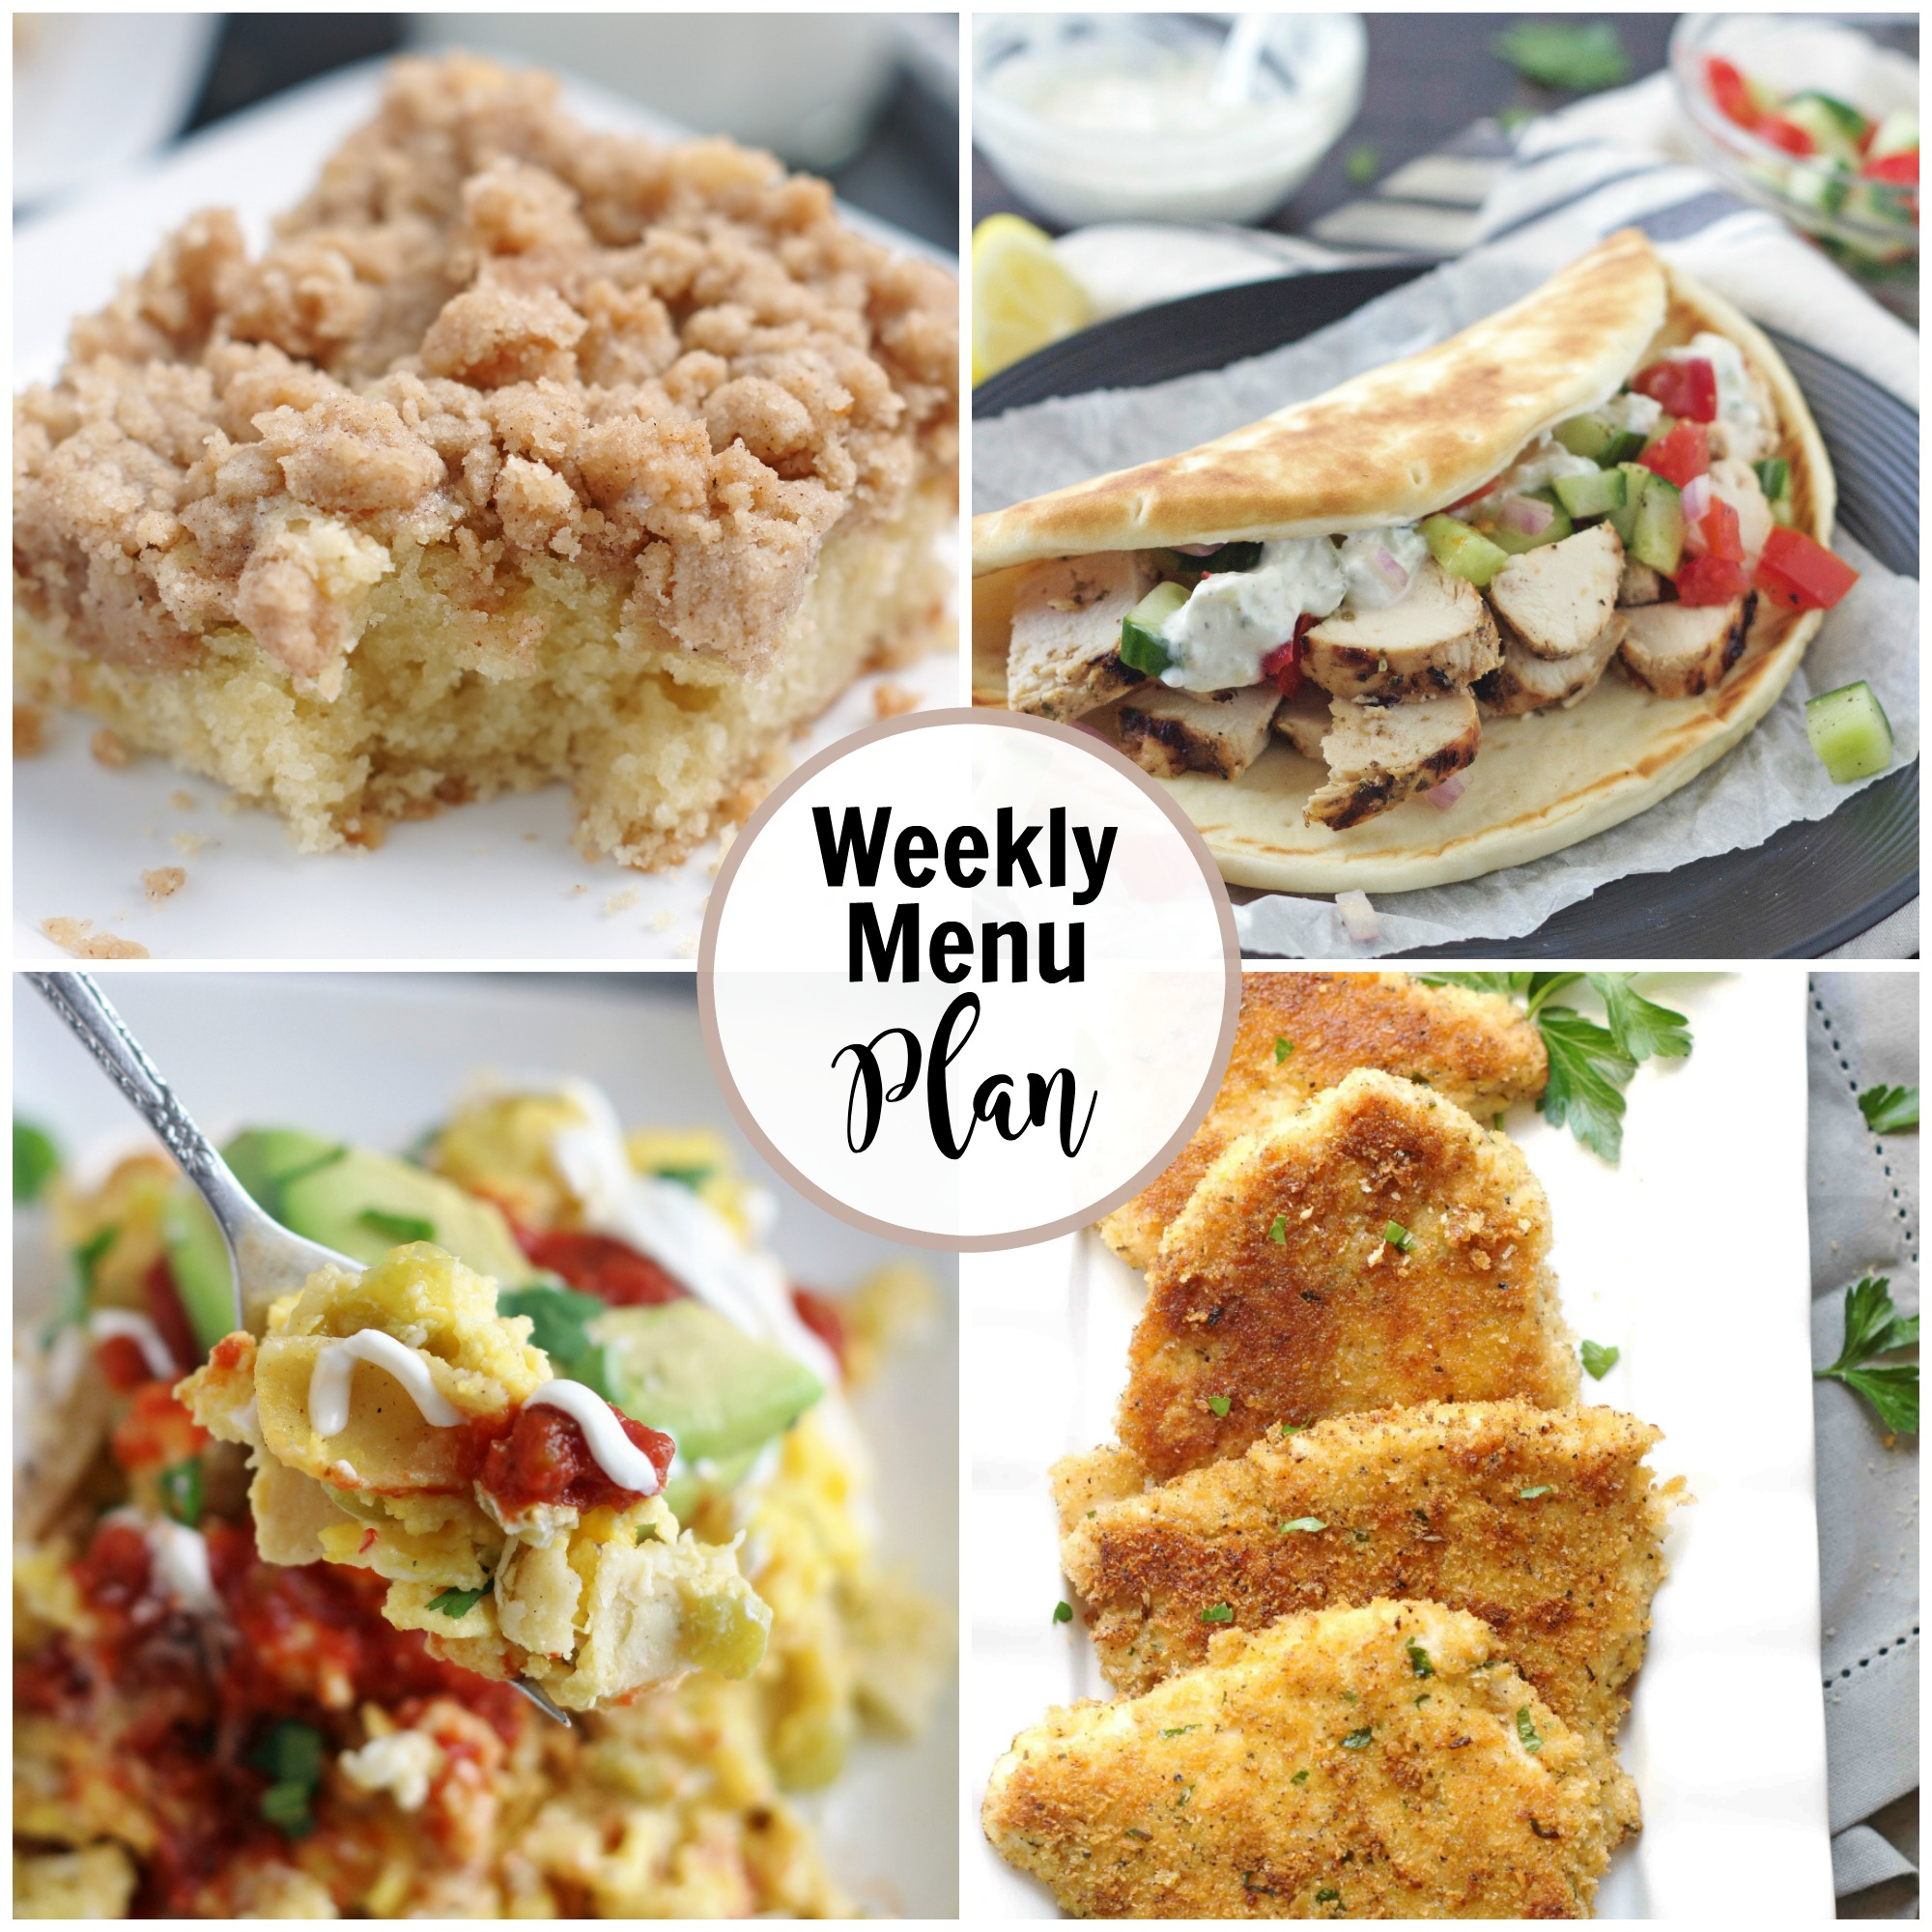 A collage of weekly menu dinner ideas